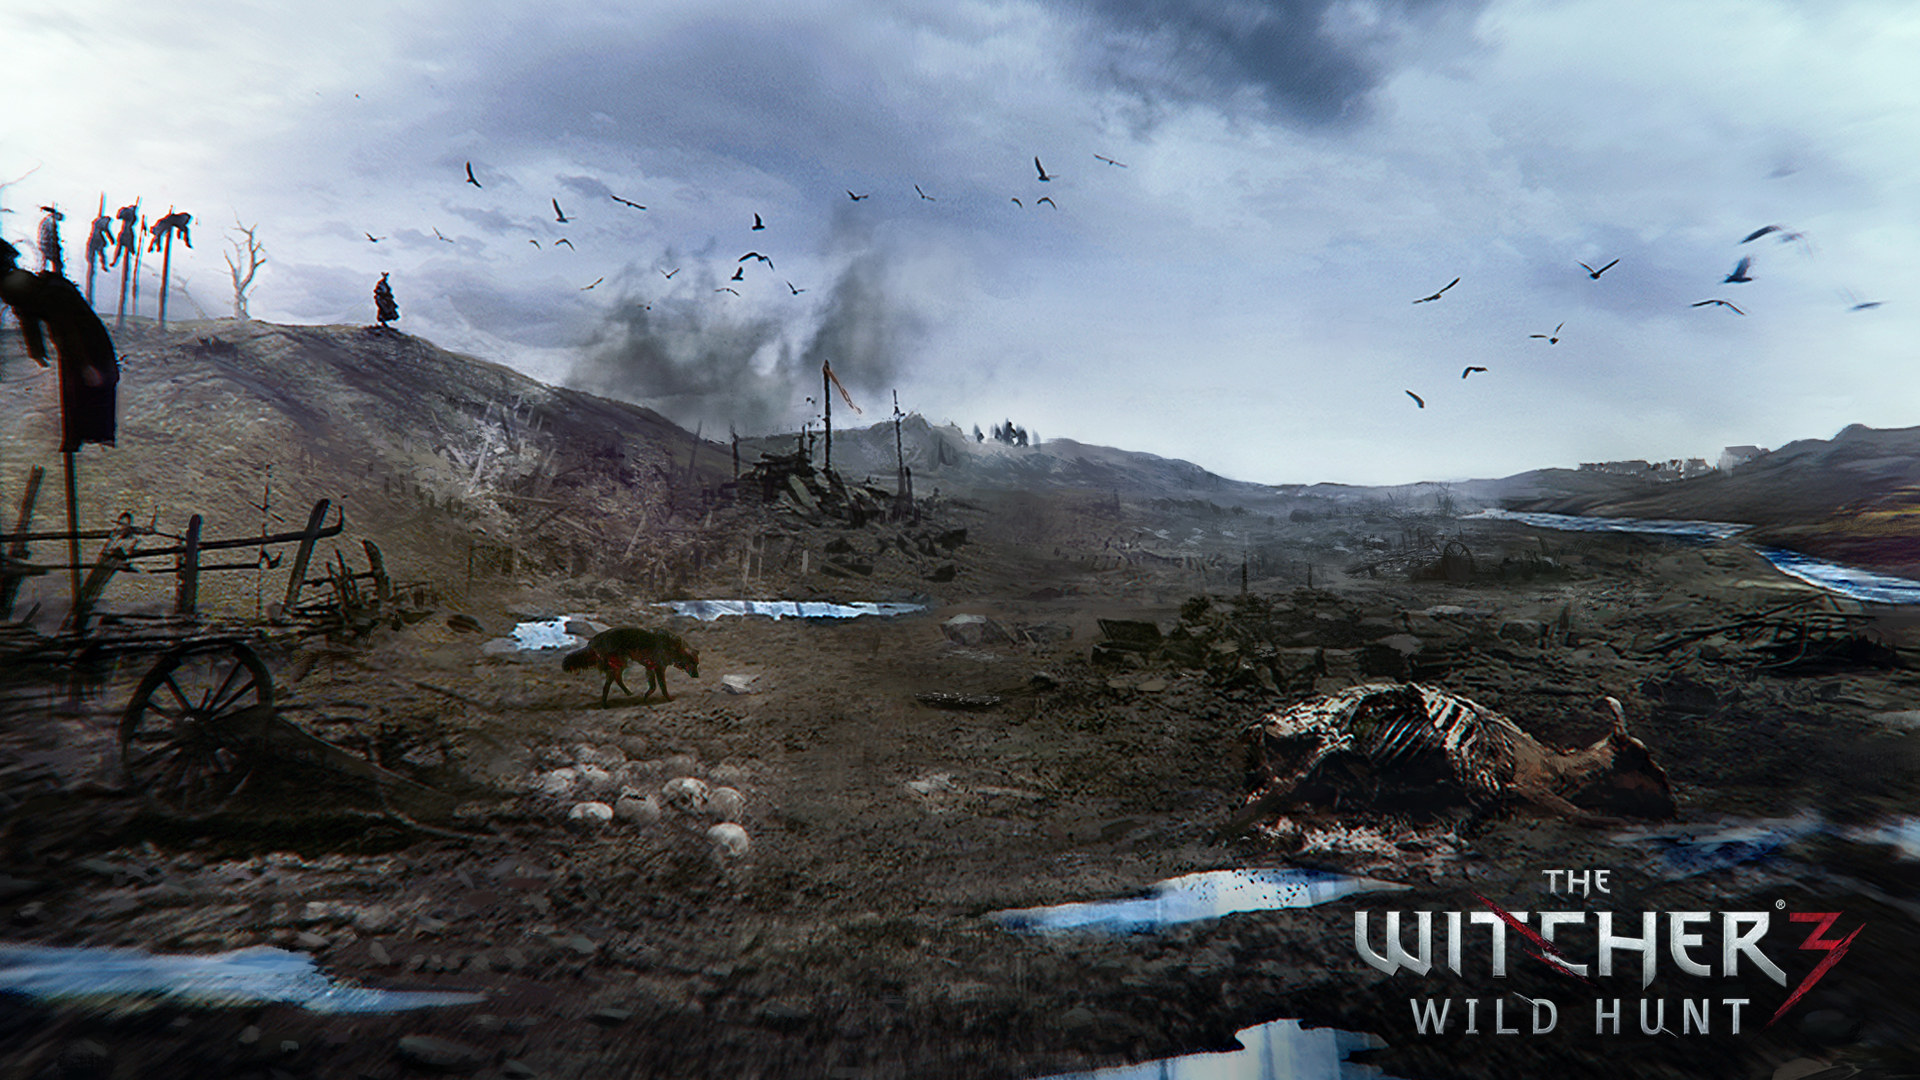 The Witcher 3 Wild Hunt New Never Before Seen Concept Art